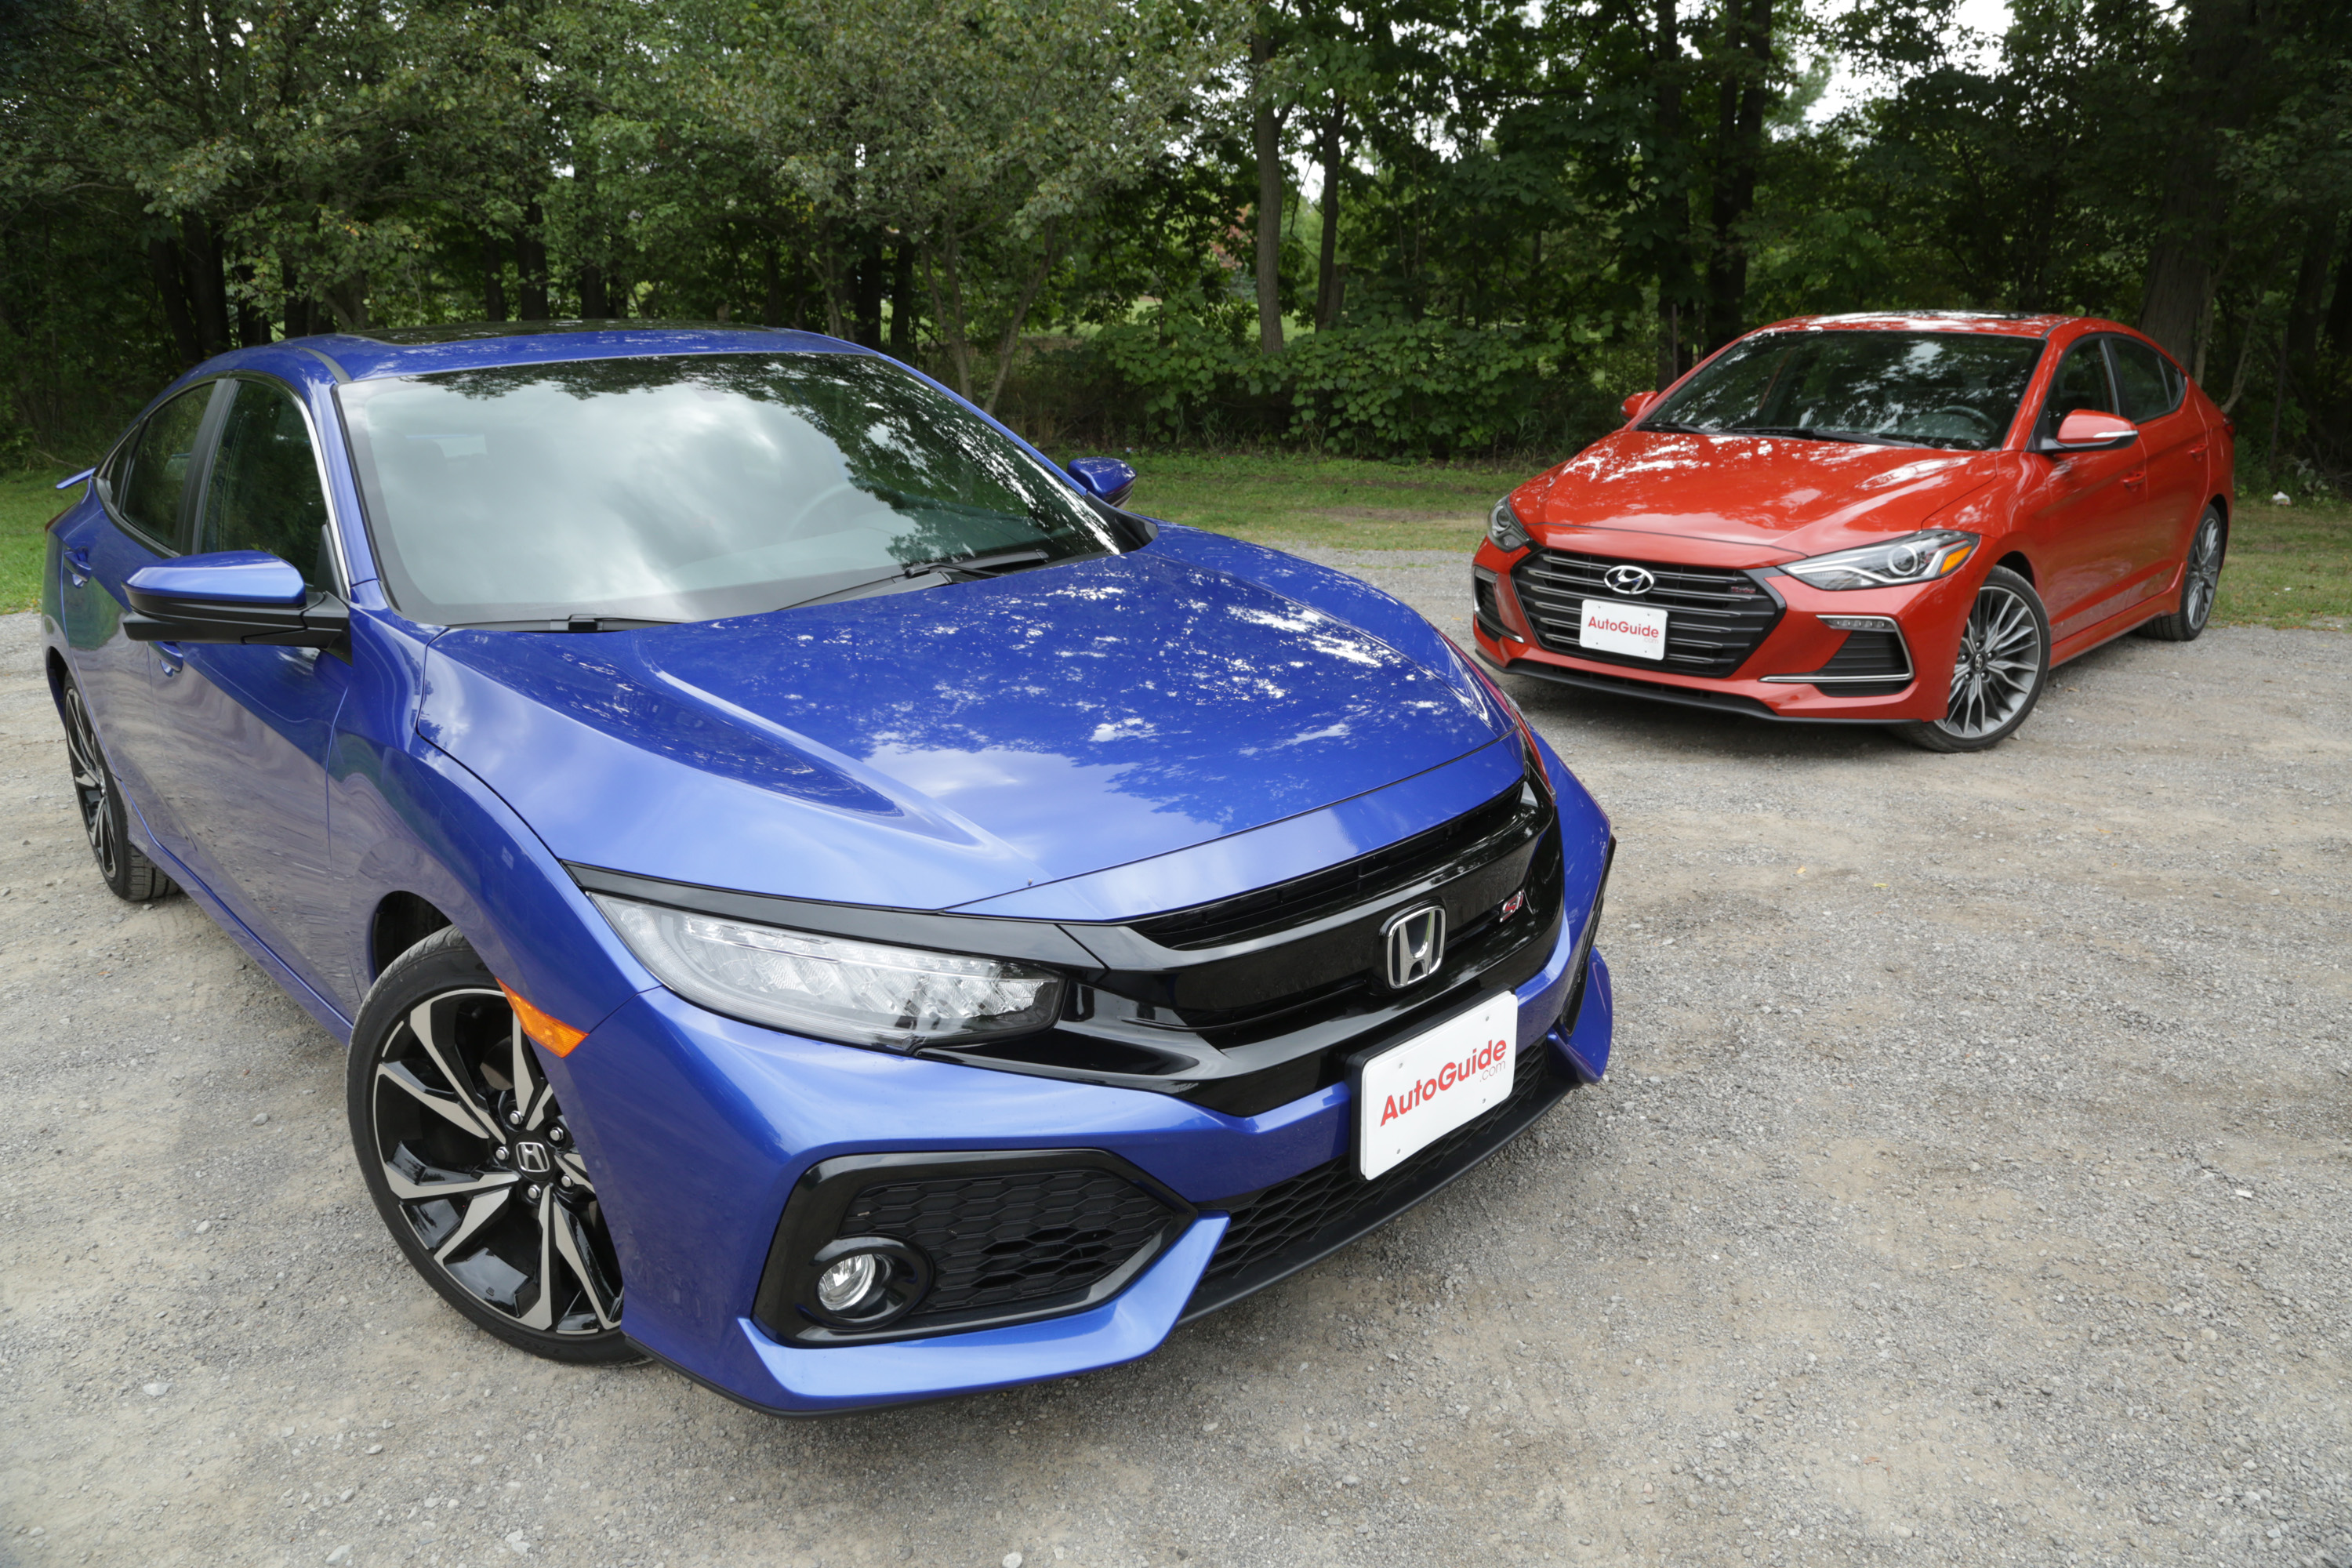 2018 Honda Civic Si Vs Elantra Sport Comparison